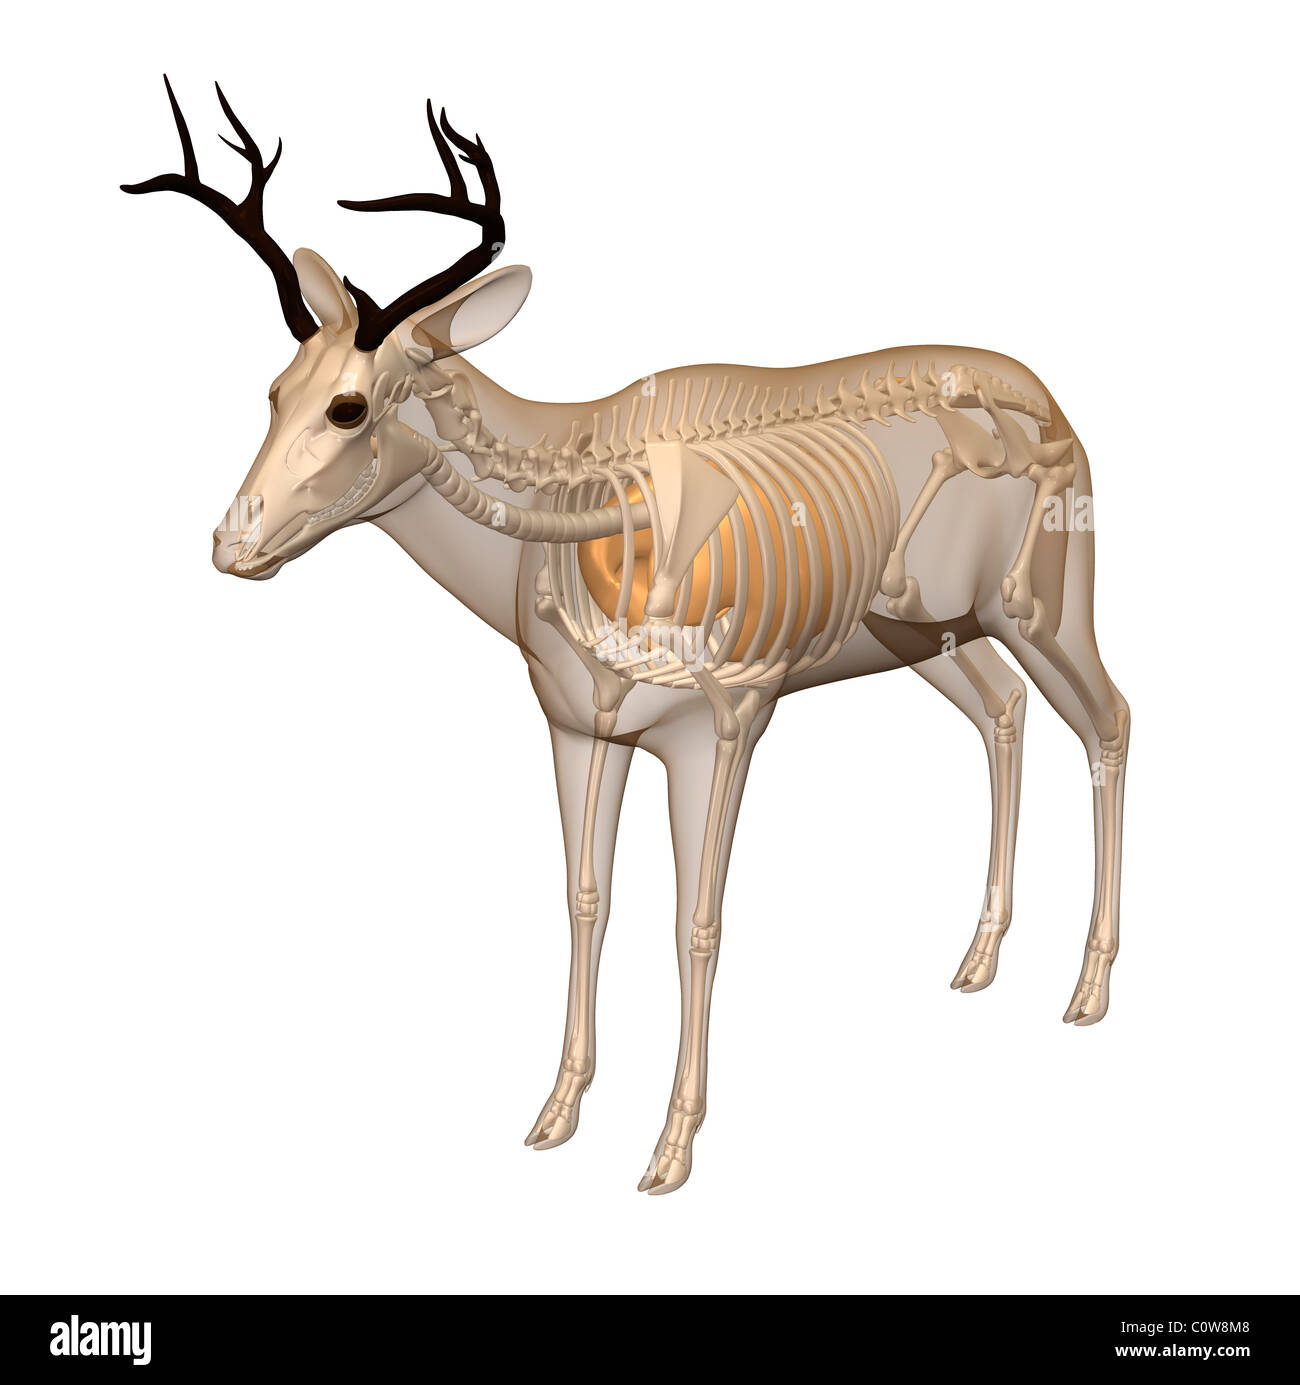 deer anatomy respiratory lungs transparent body Stock Photo ...